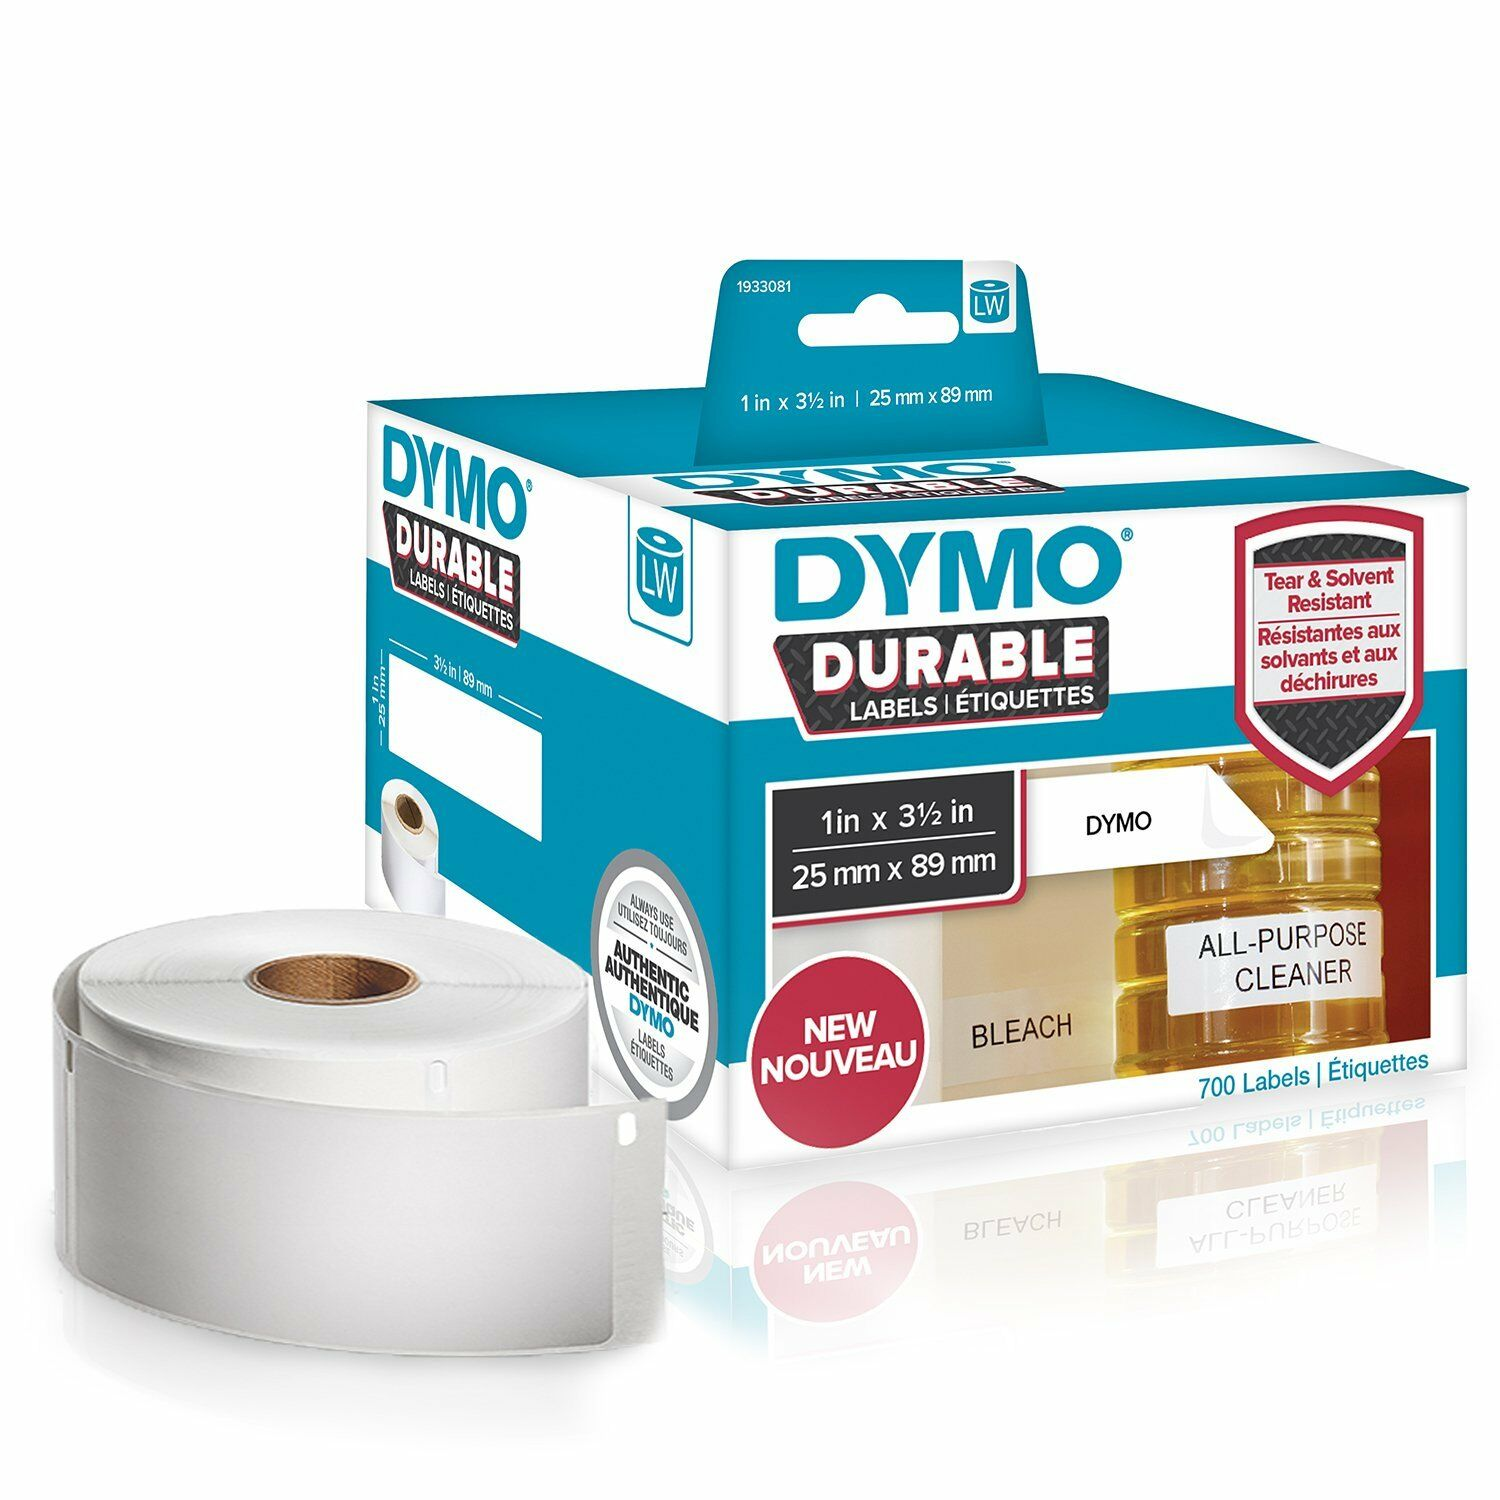 Dymo 1933081 Lw Durable 1in X 3-1 2in White Poly 700 Labels